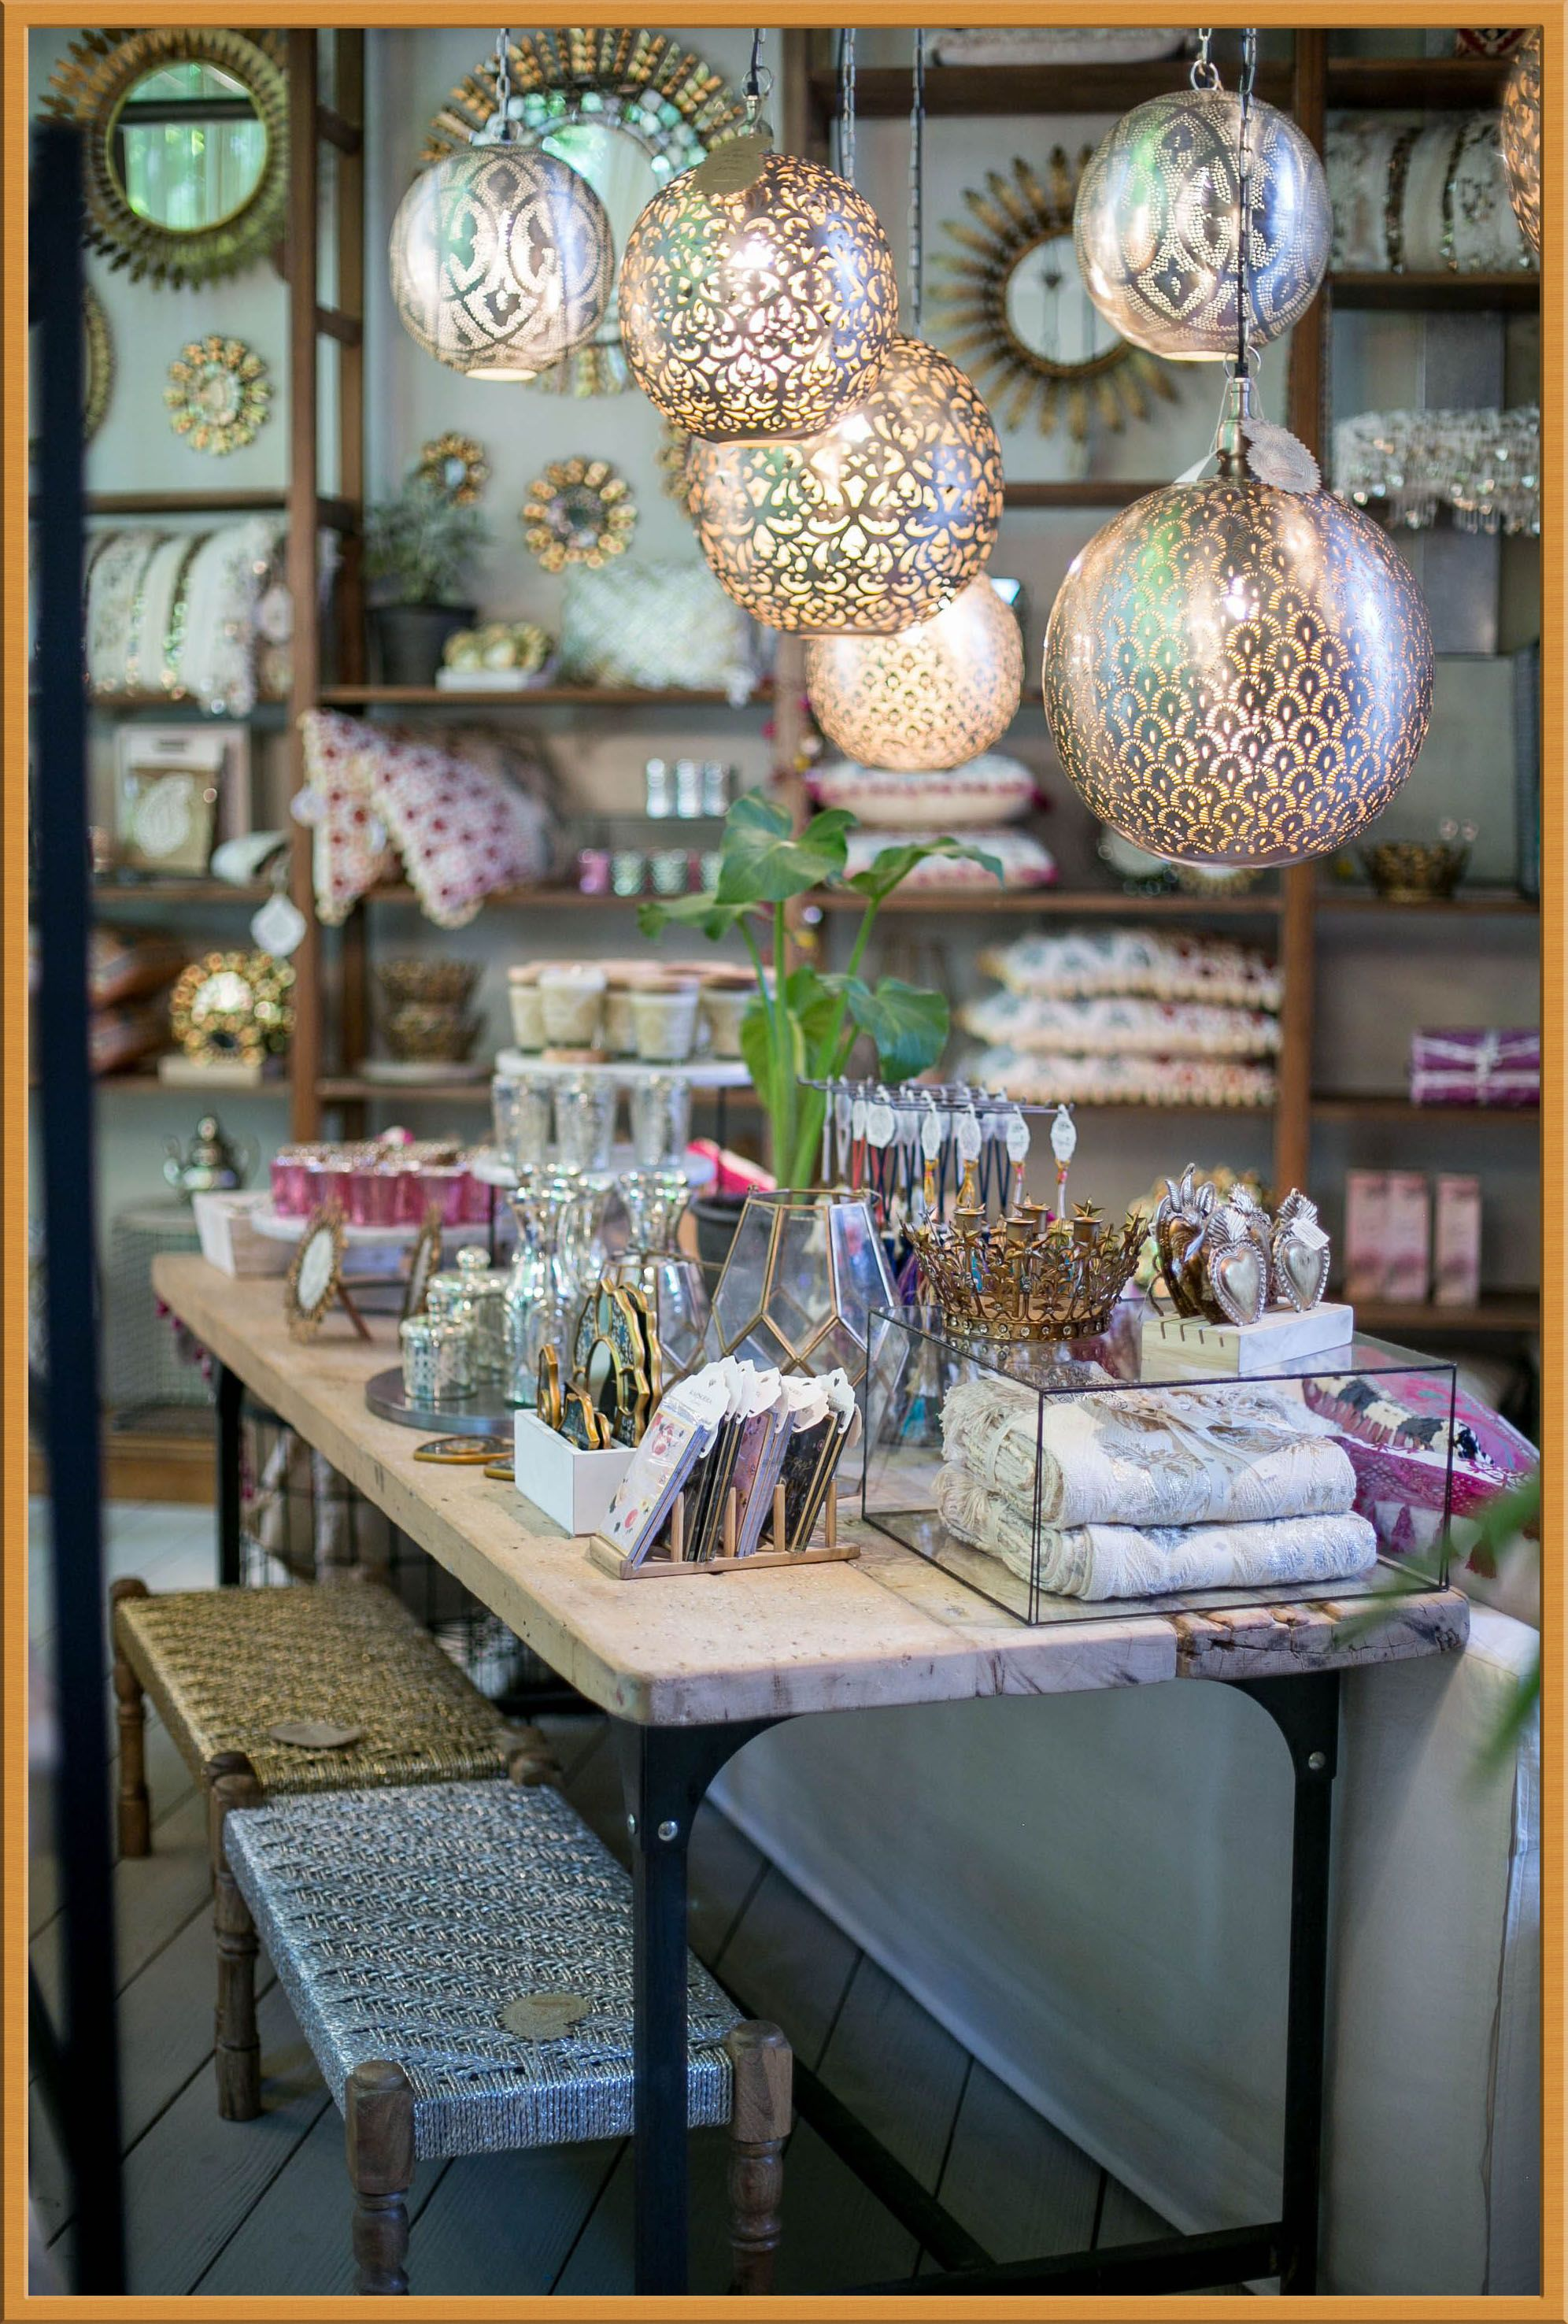 How To Win Friends And Influence People with Bohemian Homedecor